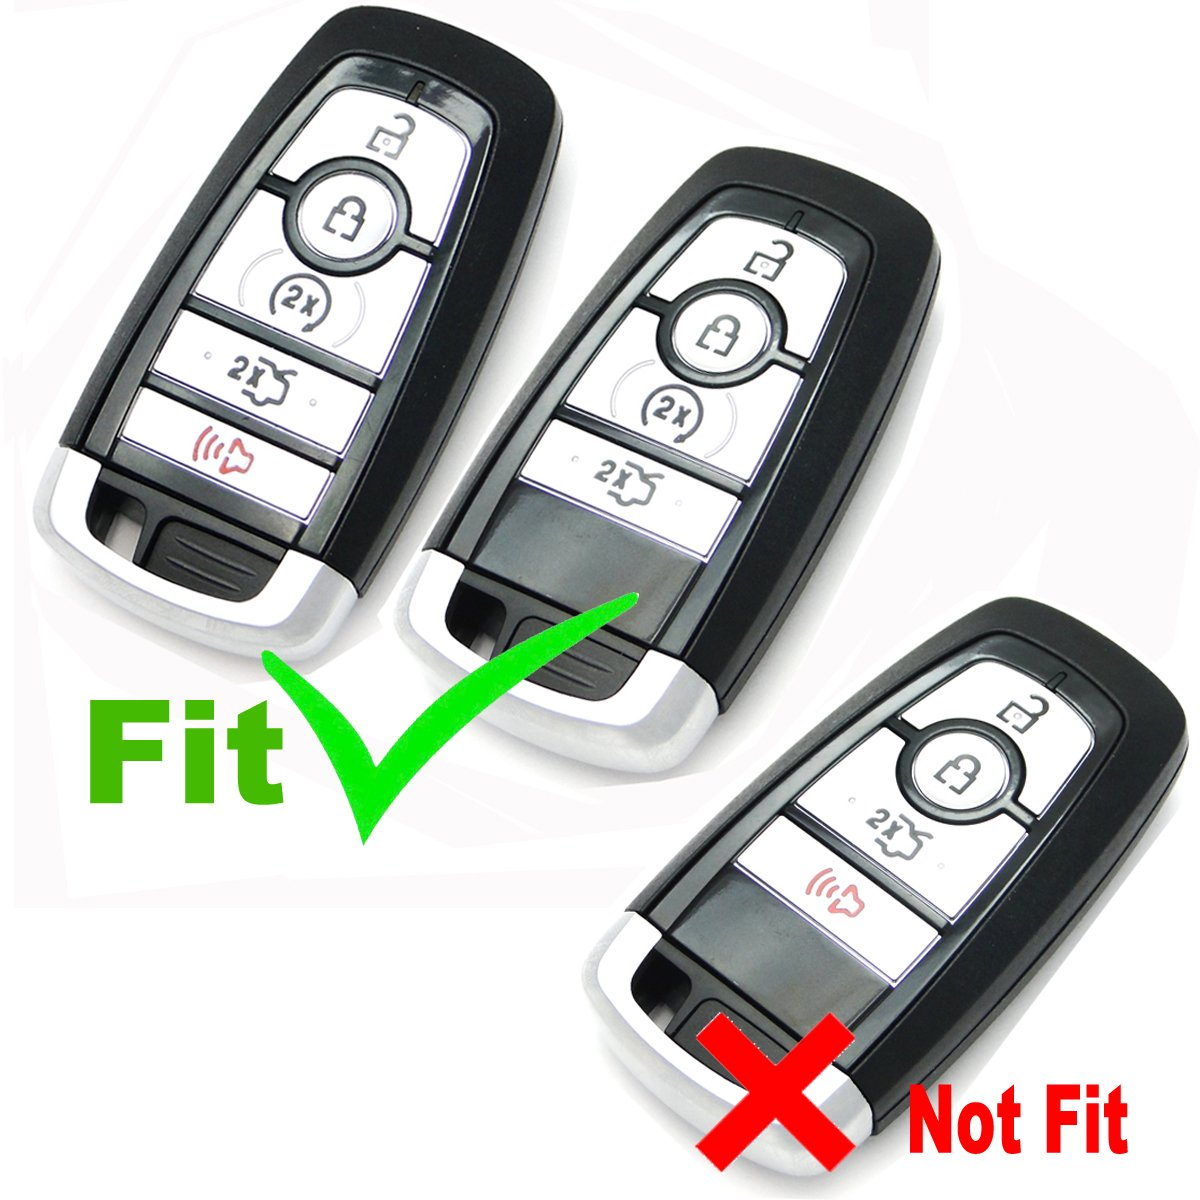 2Pcs Coolbestda Rubber 5buttons Smart Key Fob Full Protector Remote Skin Cover Case Keyless Jacket for 2017 Ford Fusion F250 F350 F450 F550 2018 Edge Explorer